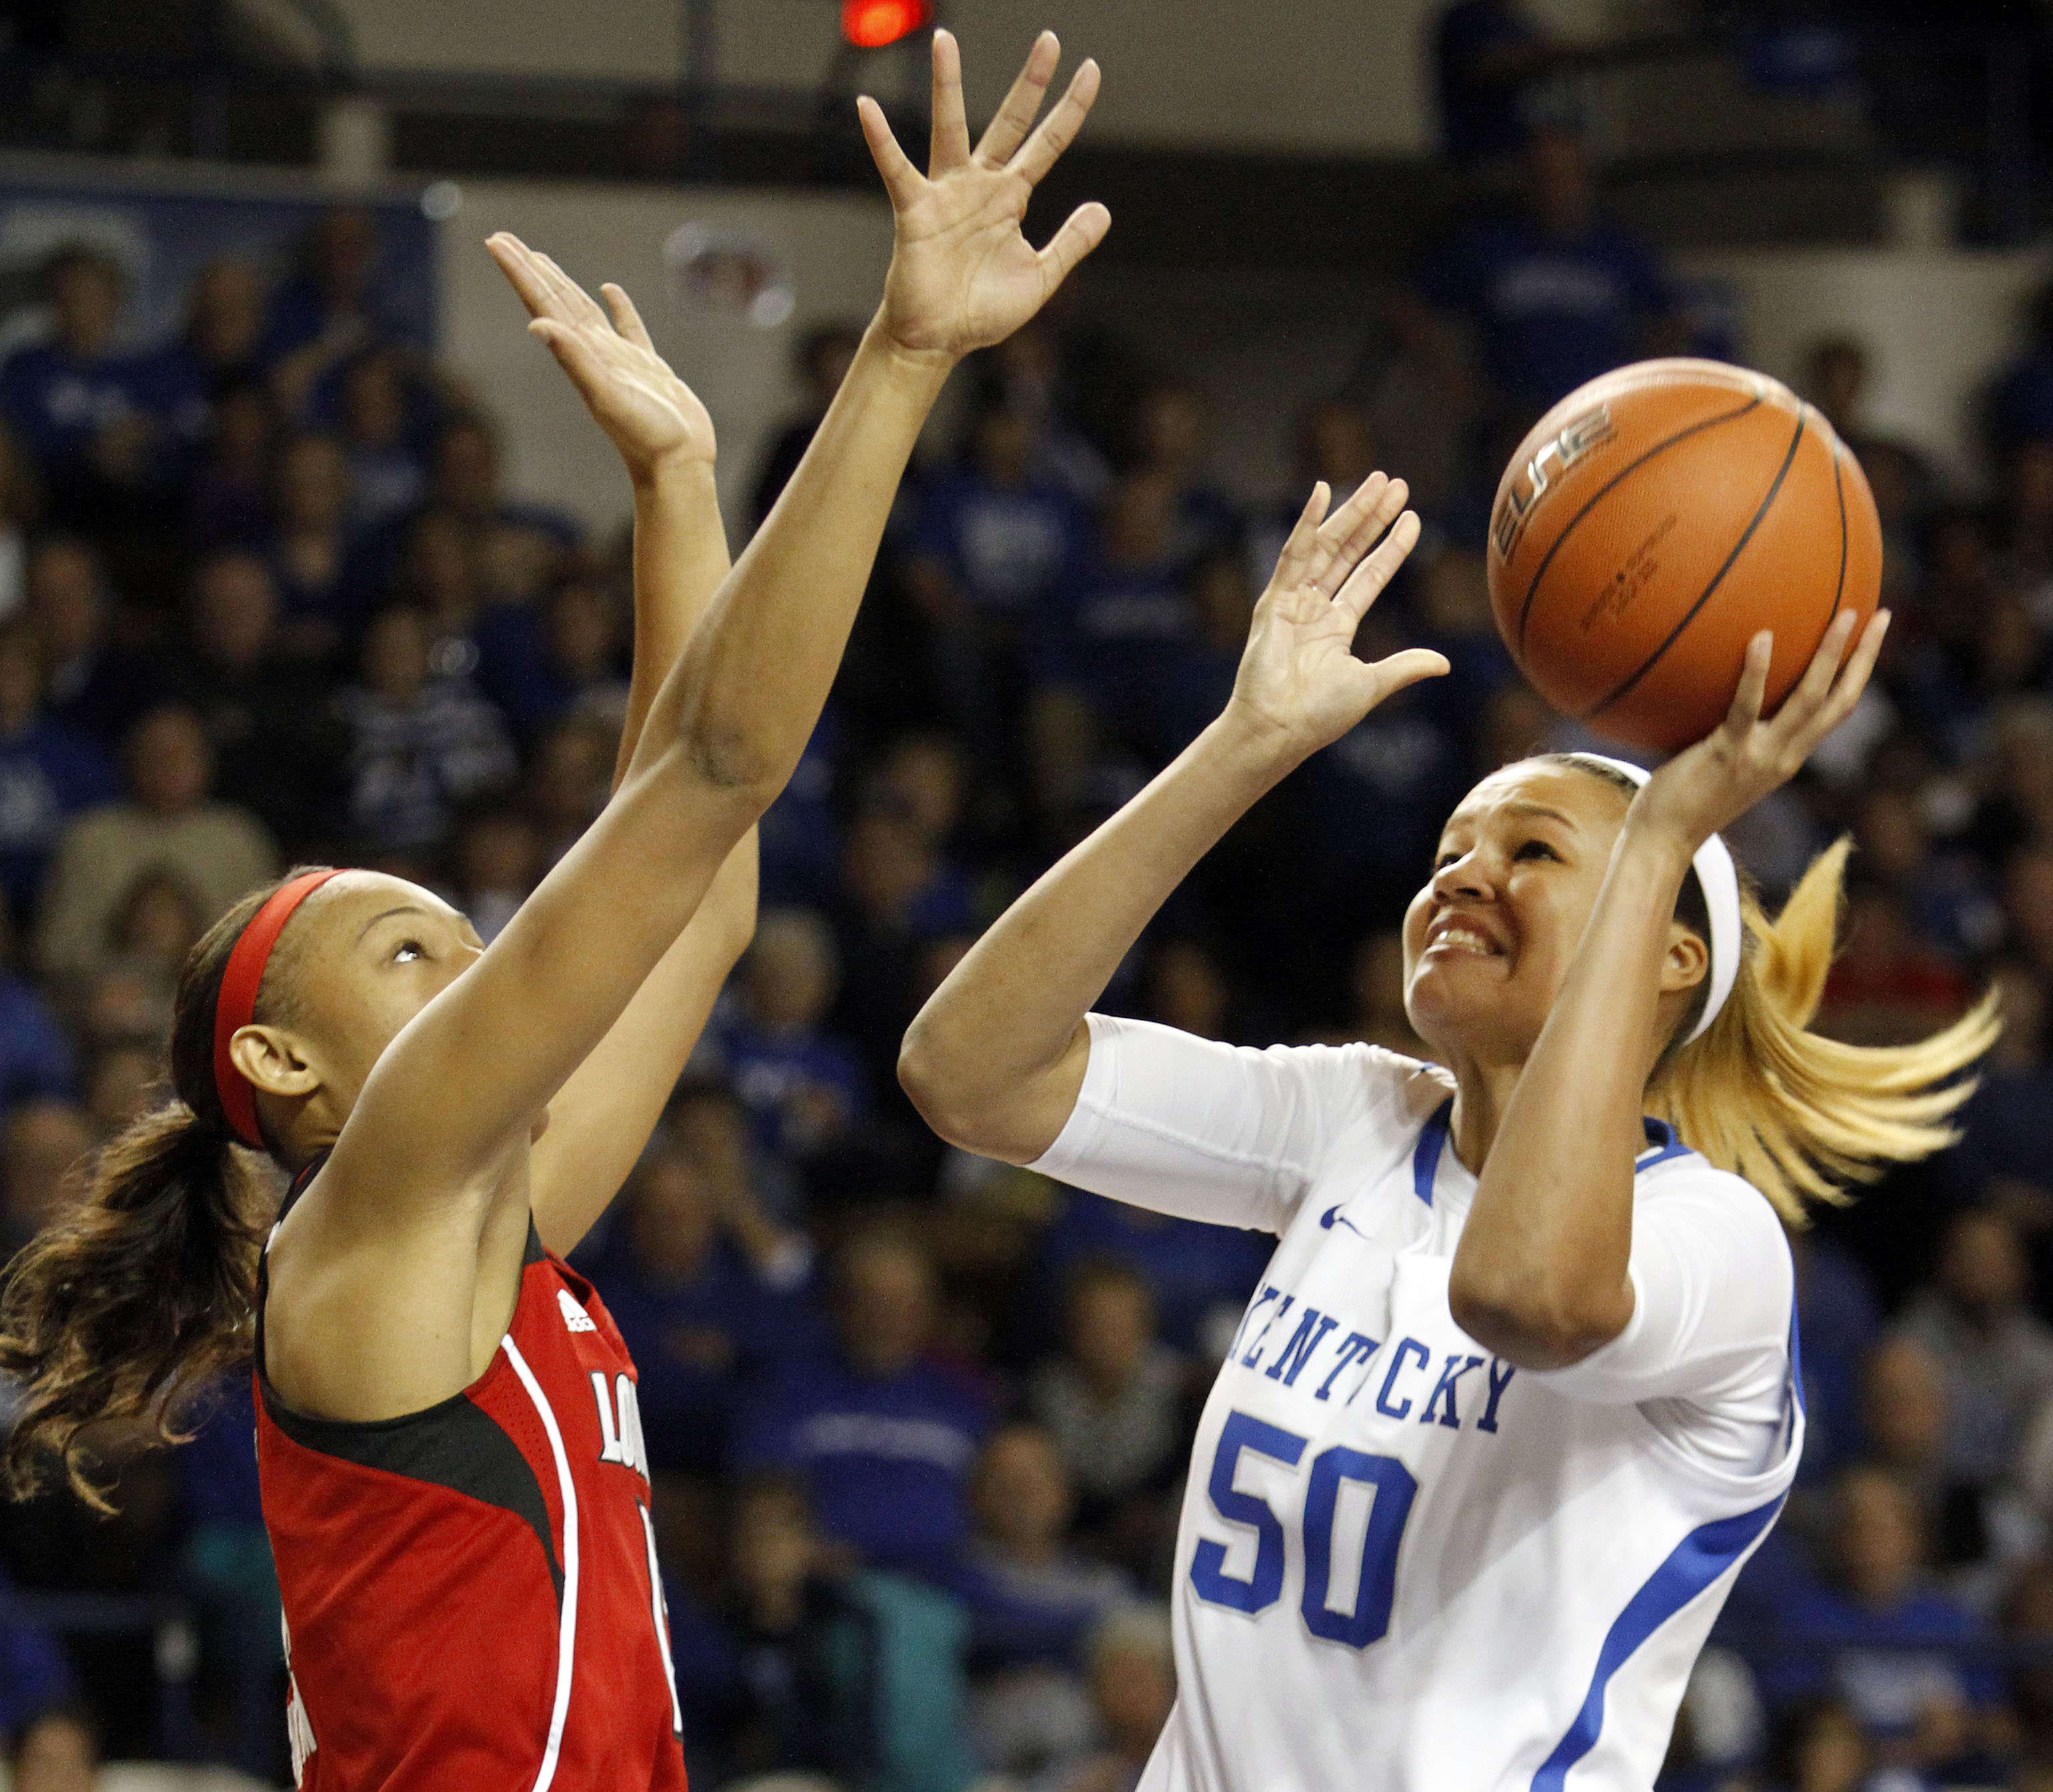 Kentucky's Azia Bishop (50) shoots under pressure from Louisville's Cortnee Walton during the first half of an NCAA college basketball game on Sunday, Dec. 1, 2013, in Lexington, Ky